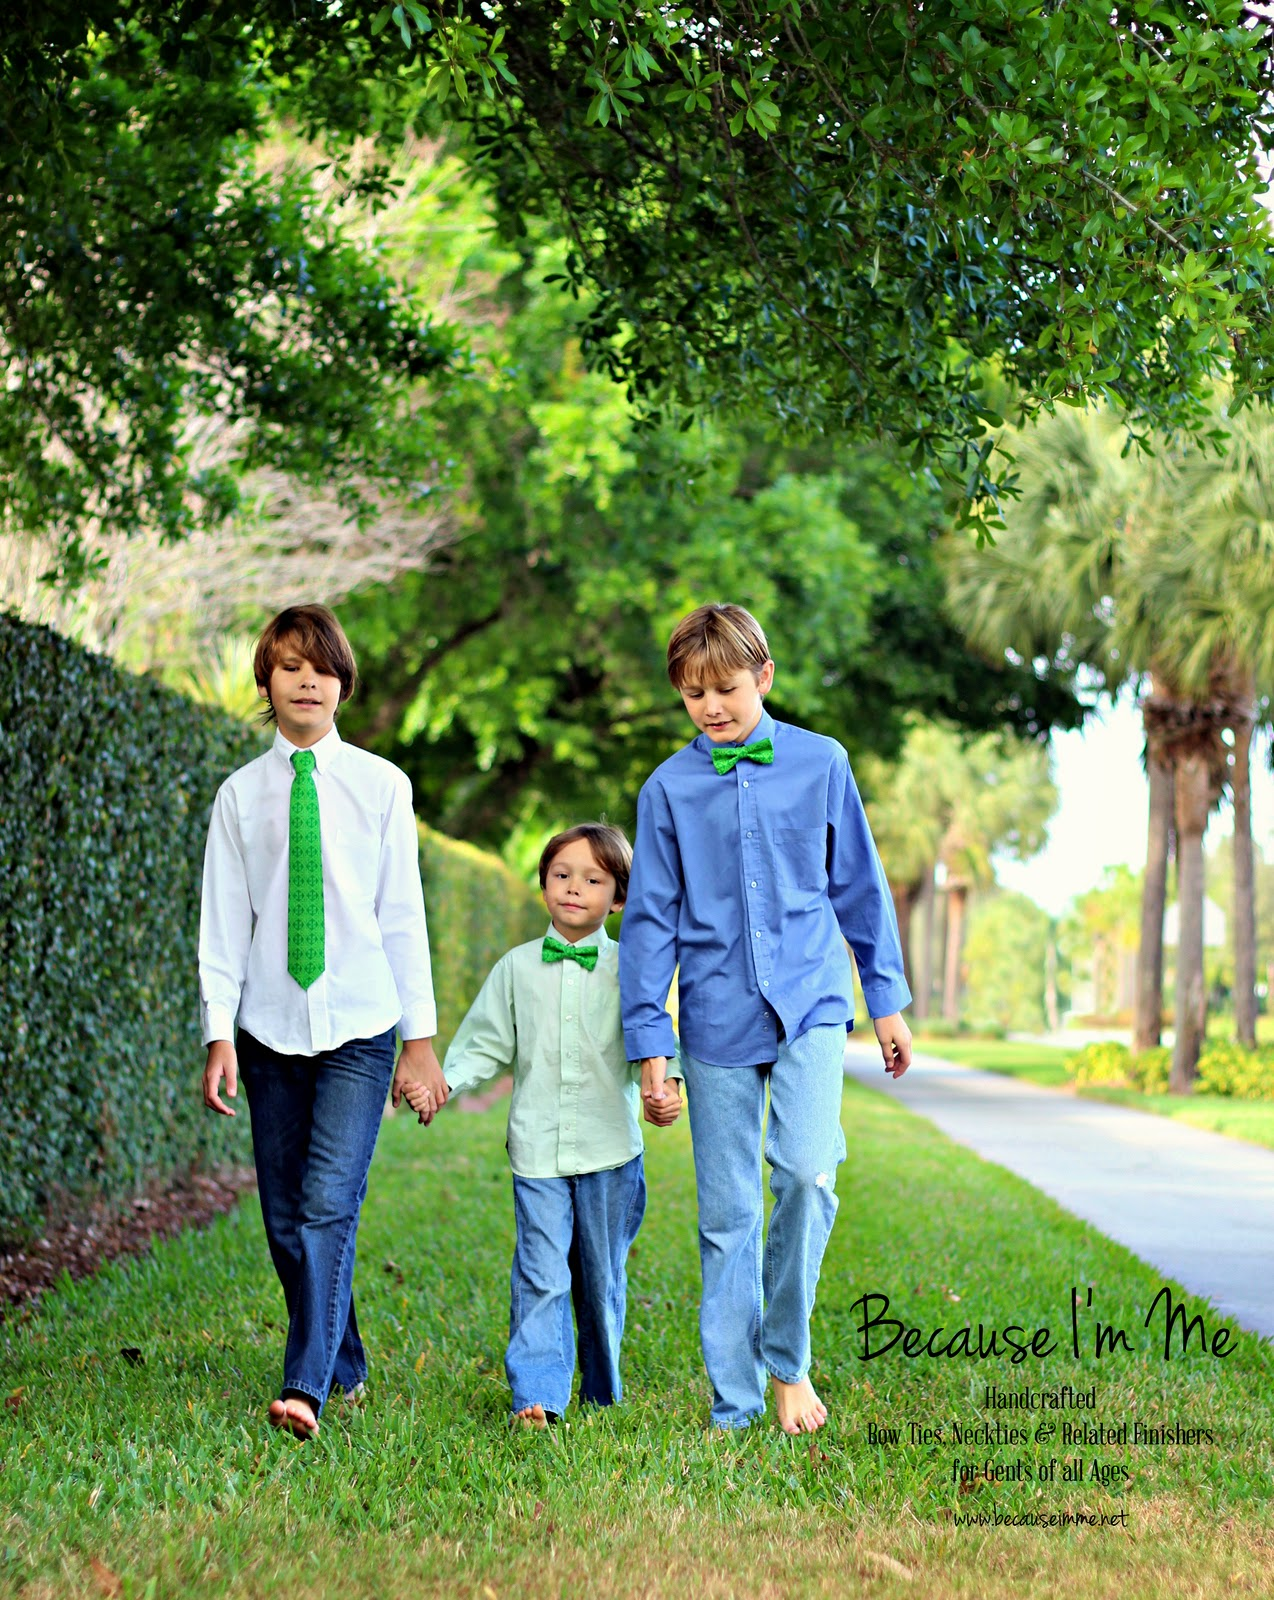 Green Bow Ties and Neckties for St. Patrick's Day, available for both men and boys